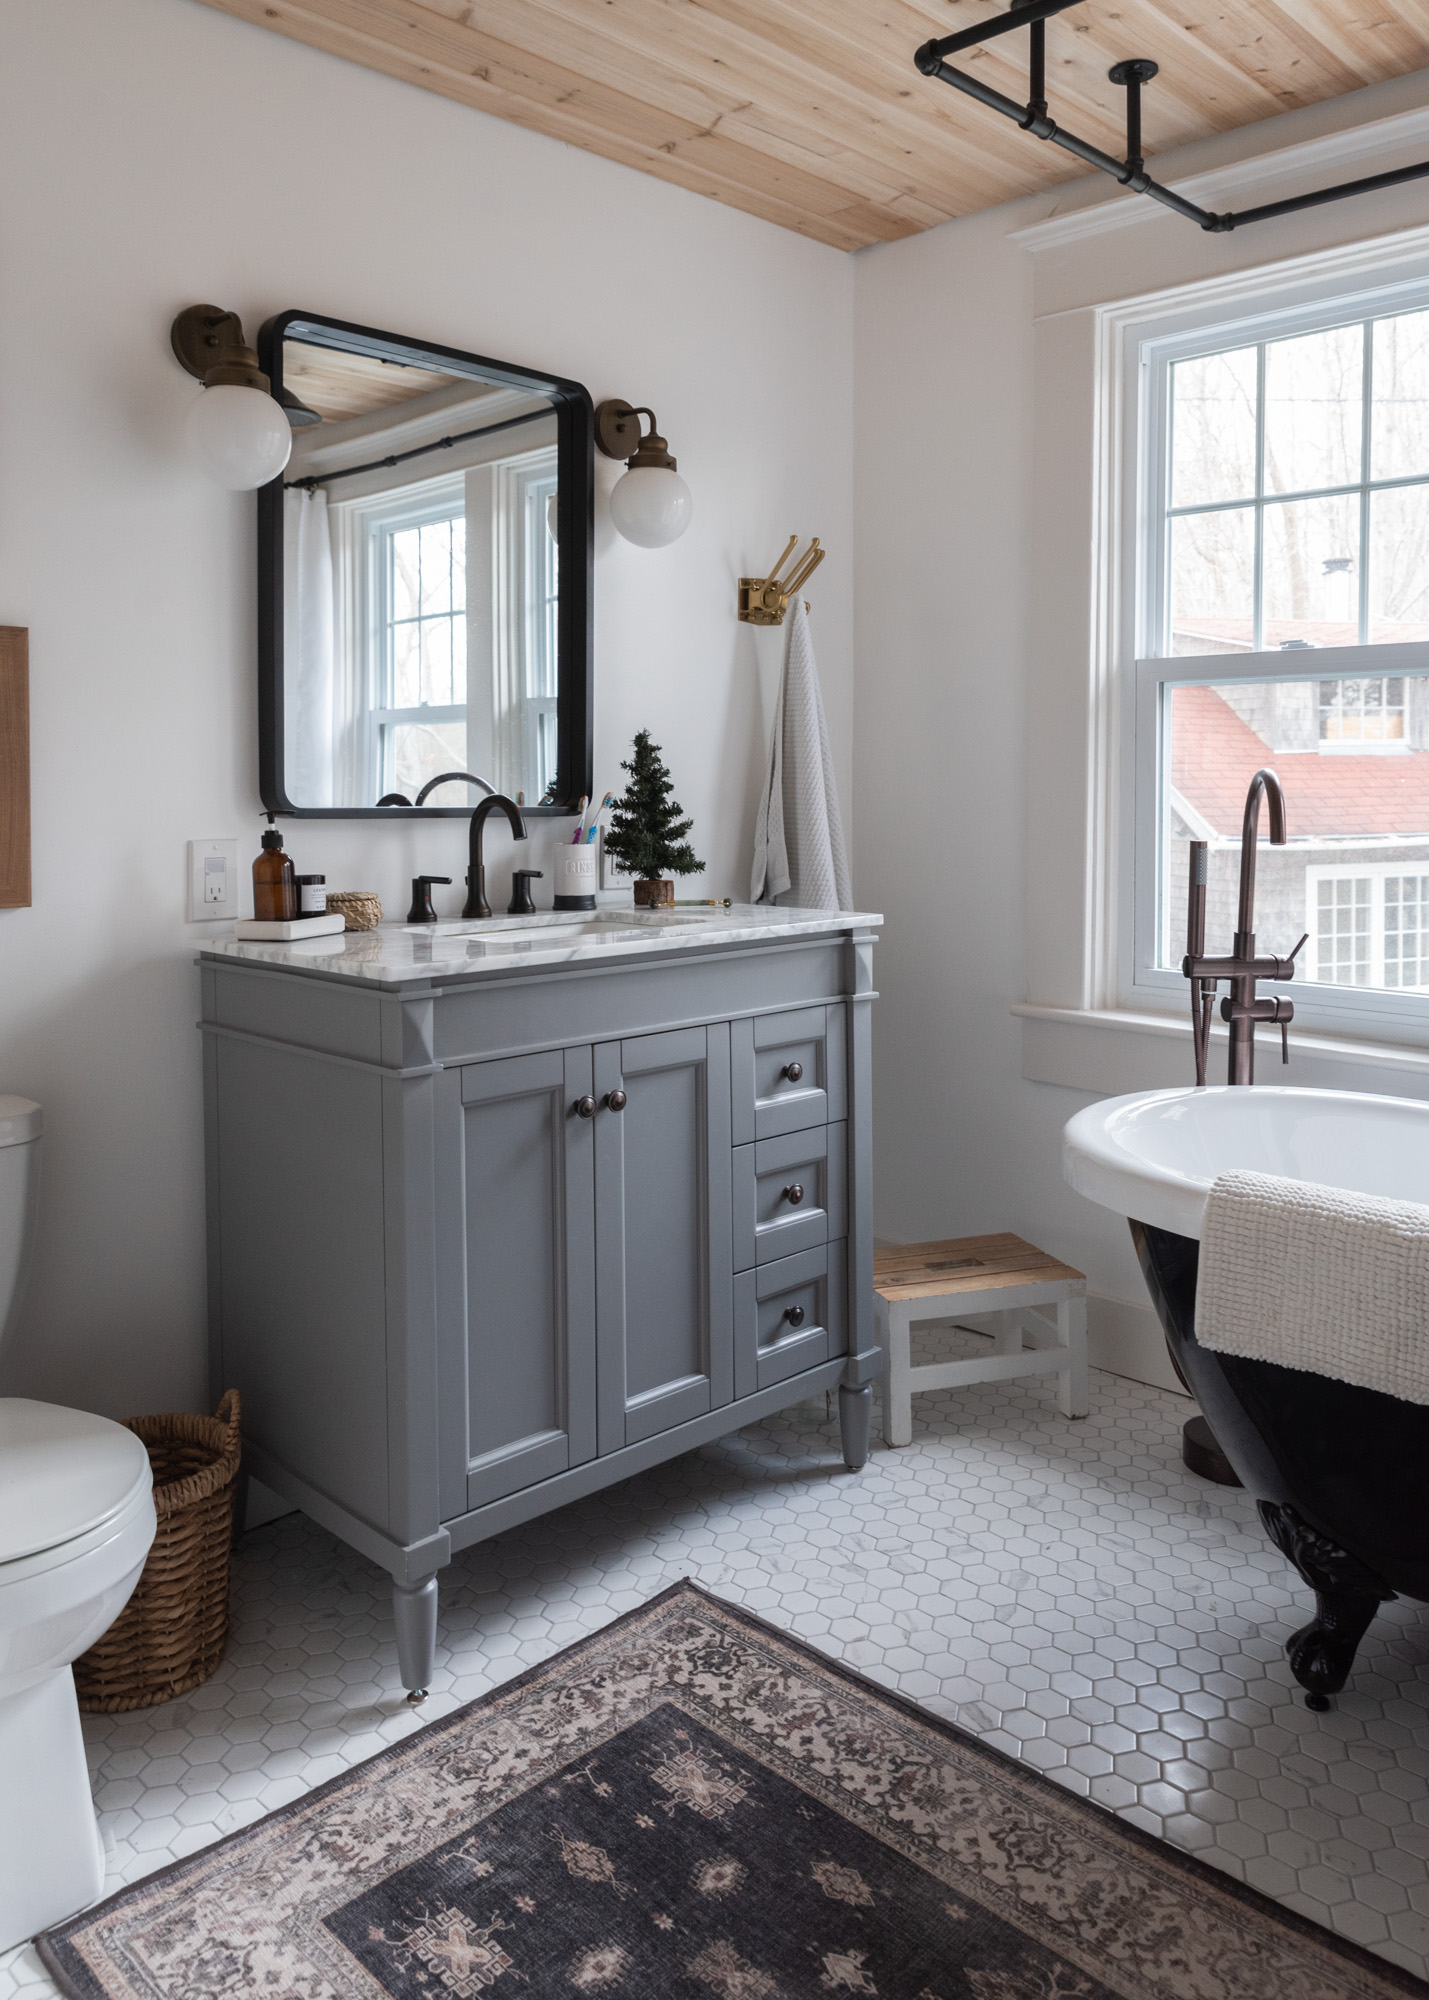 The Wild decoelis | 2020 Holiday Home Tour | Gray vanity with marble countertop, marble hexagon floor tile, rugggable Rug, black clawfoot tub gold fixtures